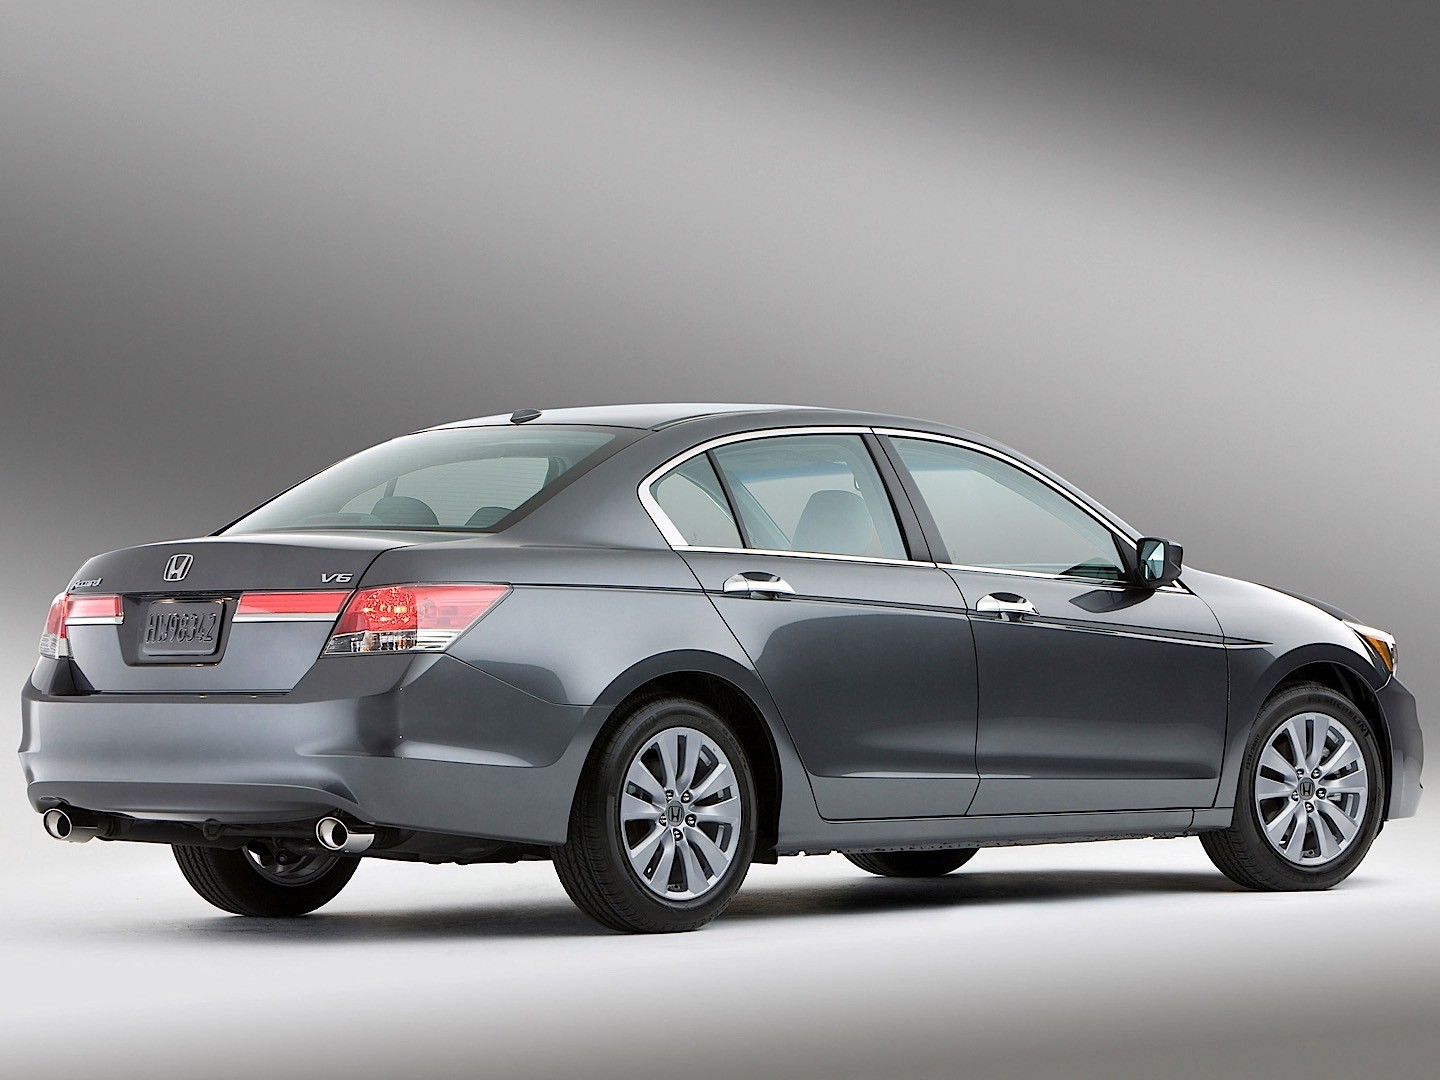 Honda Accord 2012 Exterior Rear Side View